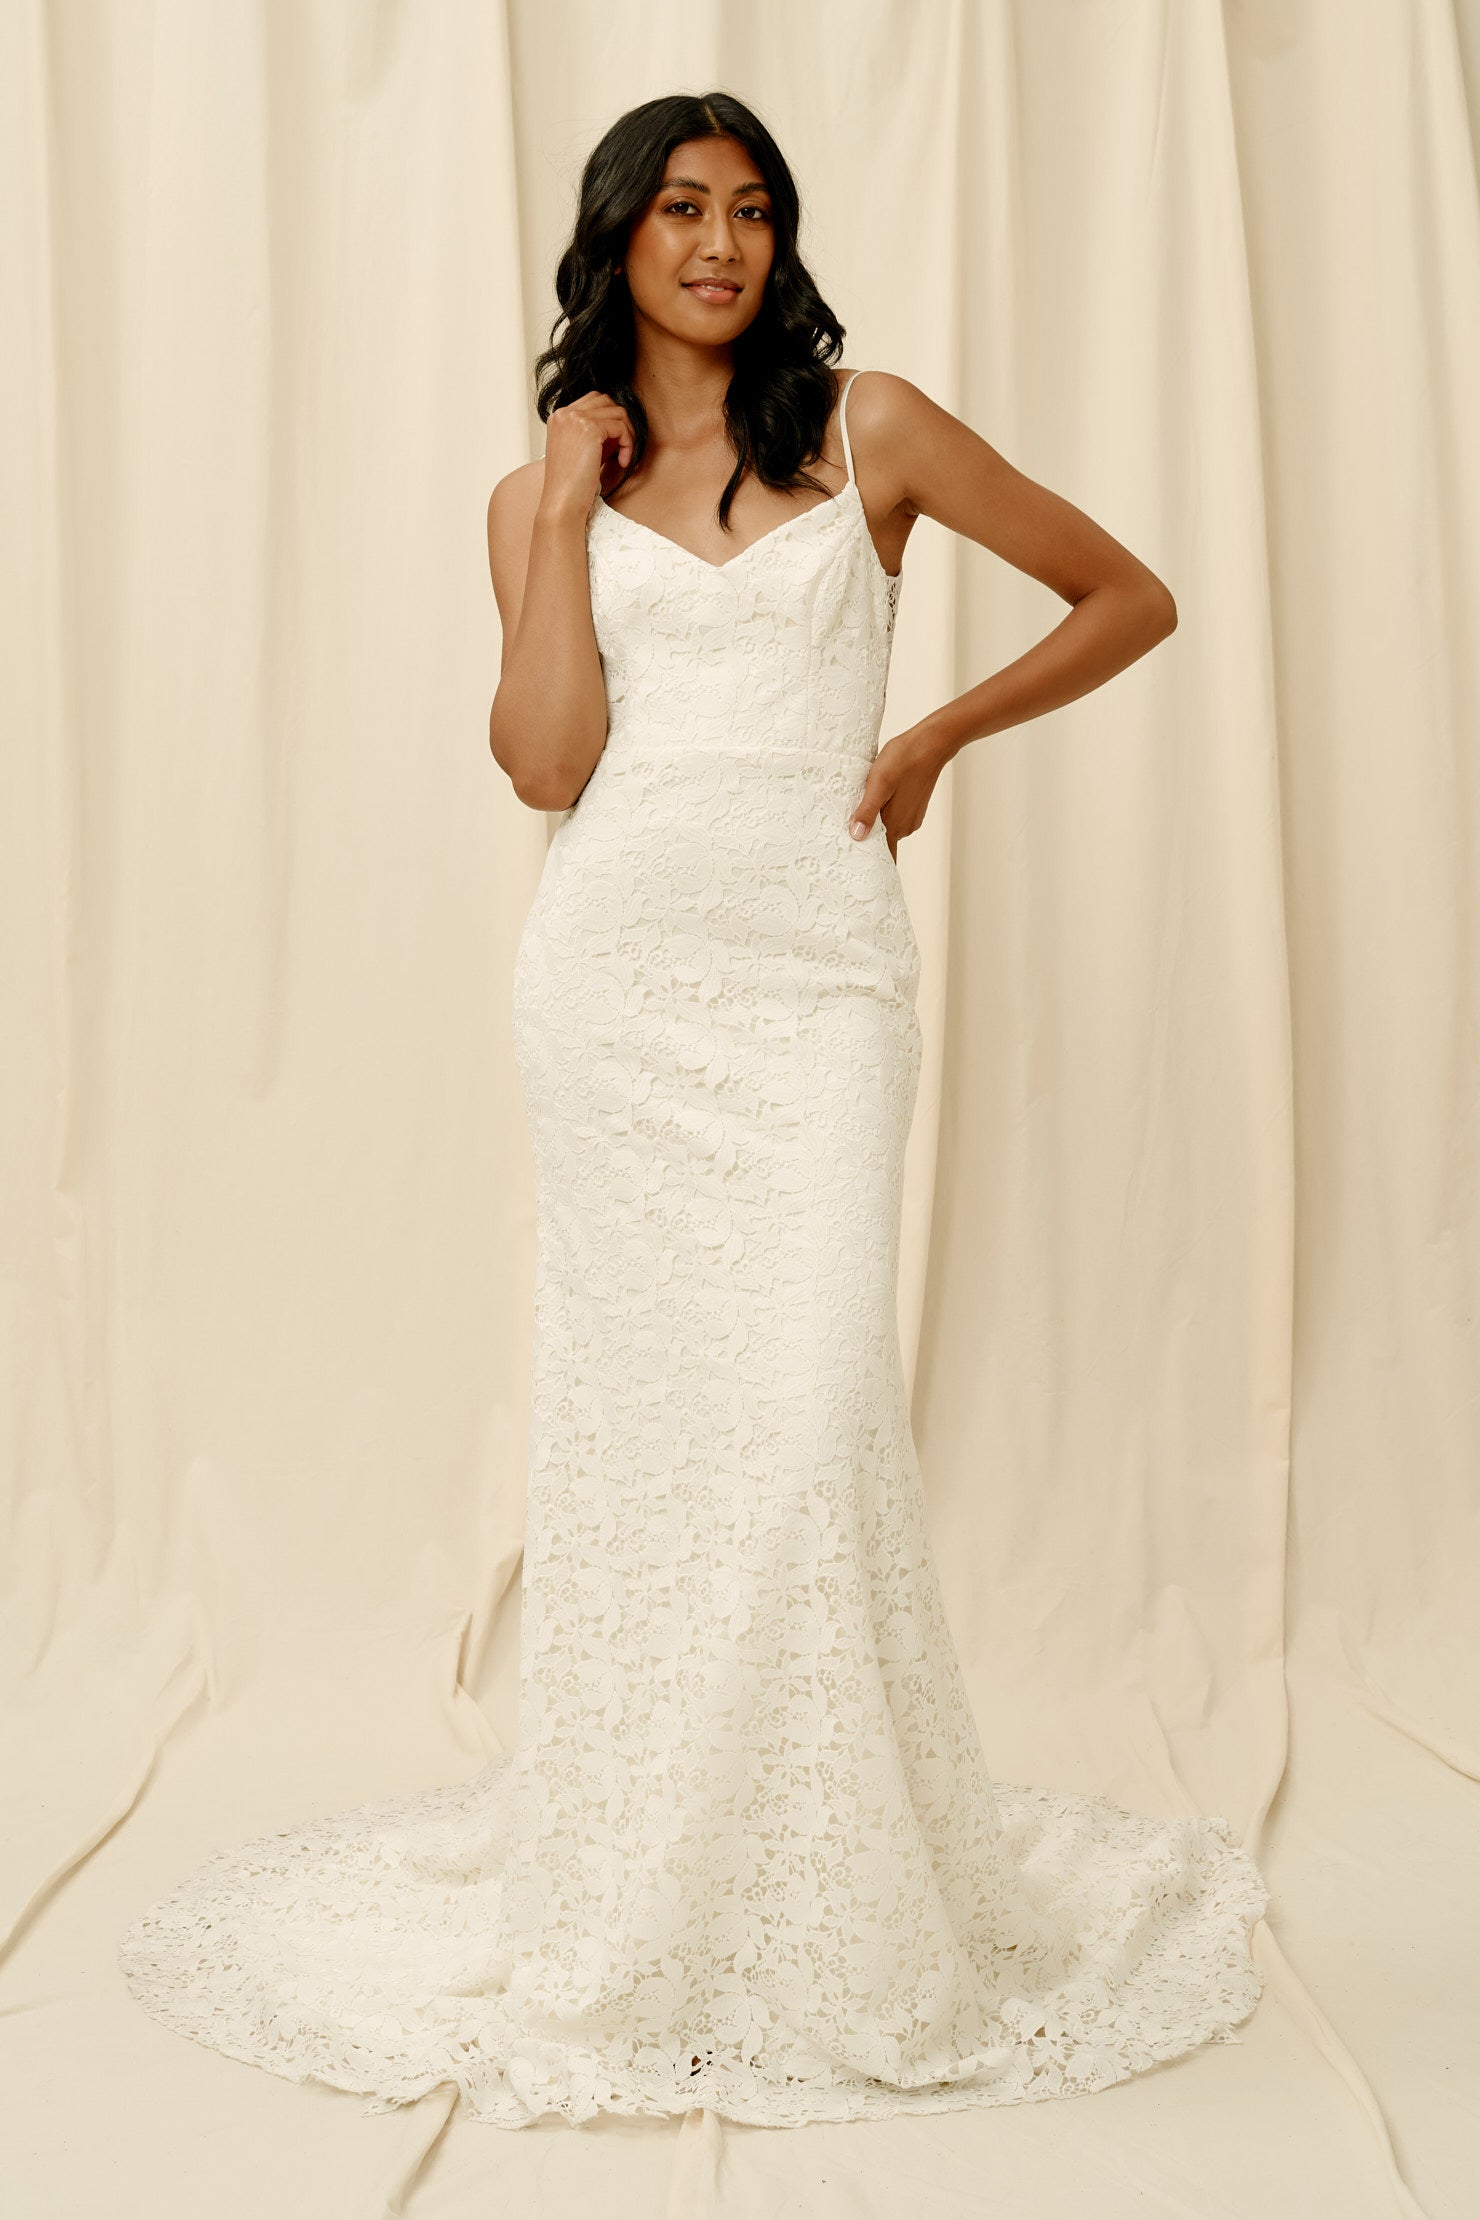 Fitted lace wedding dress with spaghetti straps